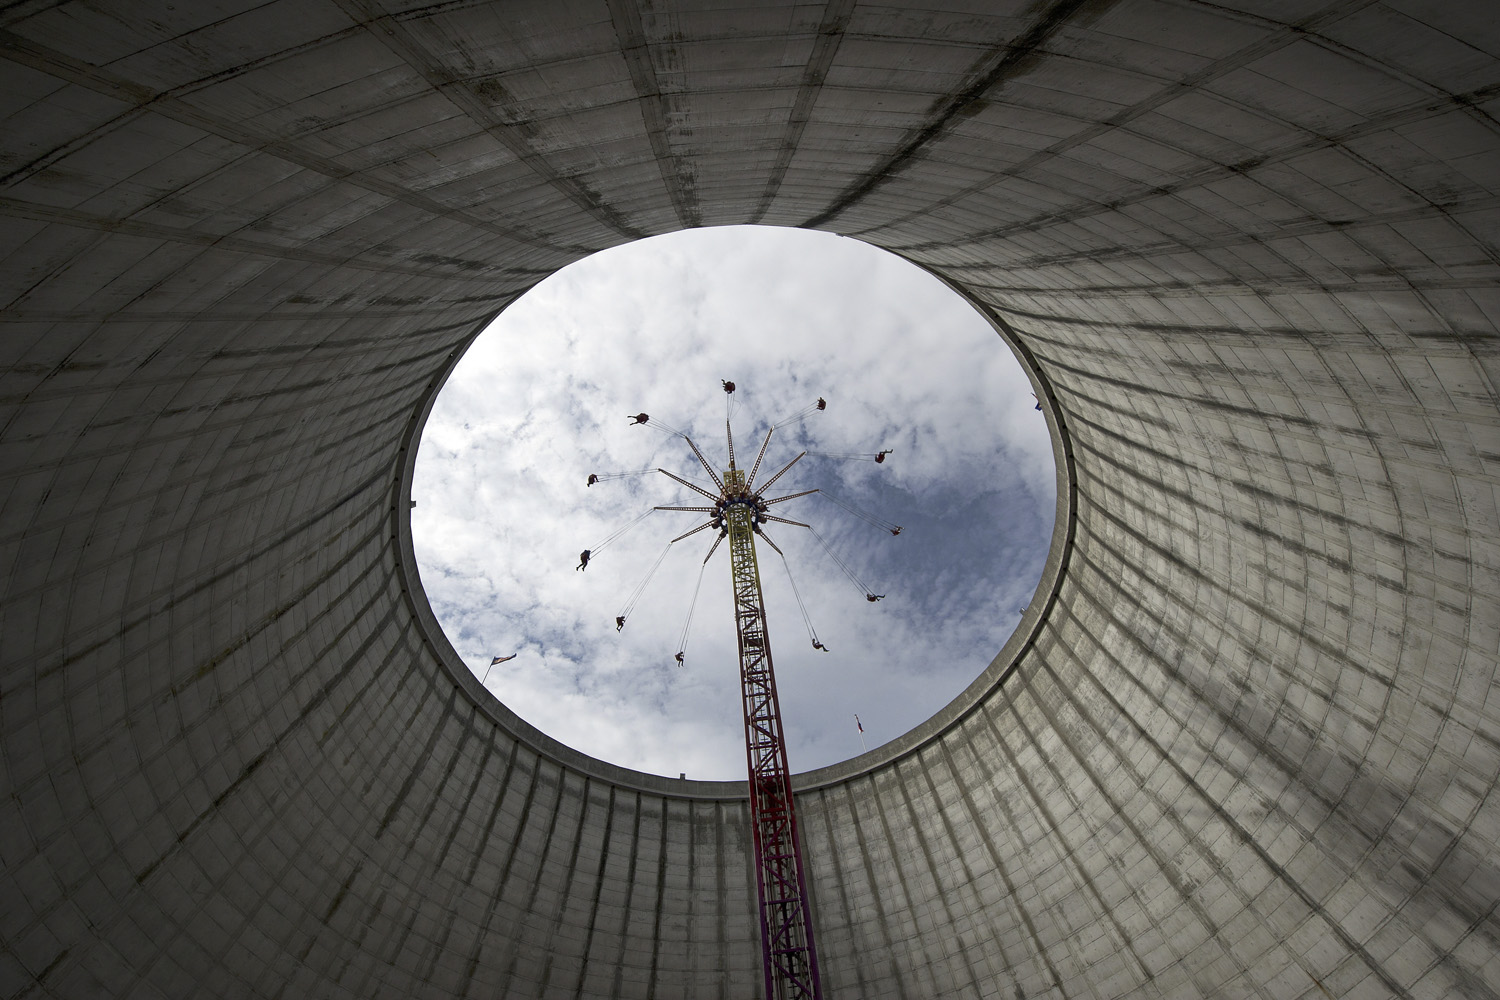 May 28, 2011. A merry-go-round turns inside of the cooling tower of the former nuclear power plant in Kalkar, western Germany, near the border with the Netherlands. The plant was constructed from 1977 to 1986, but never operated  as nuclear power plant. Today, the plant serves as a leisure fun park, welcoming some 600,000 visitors a year.